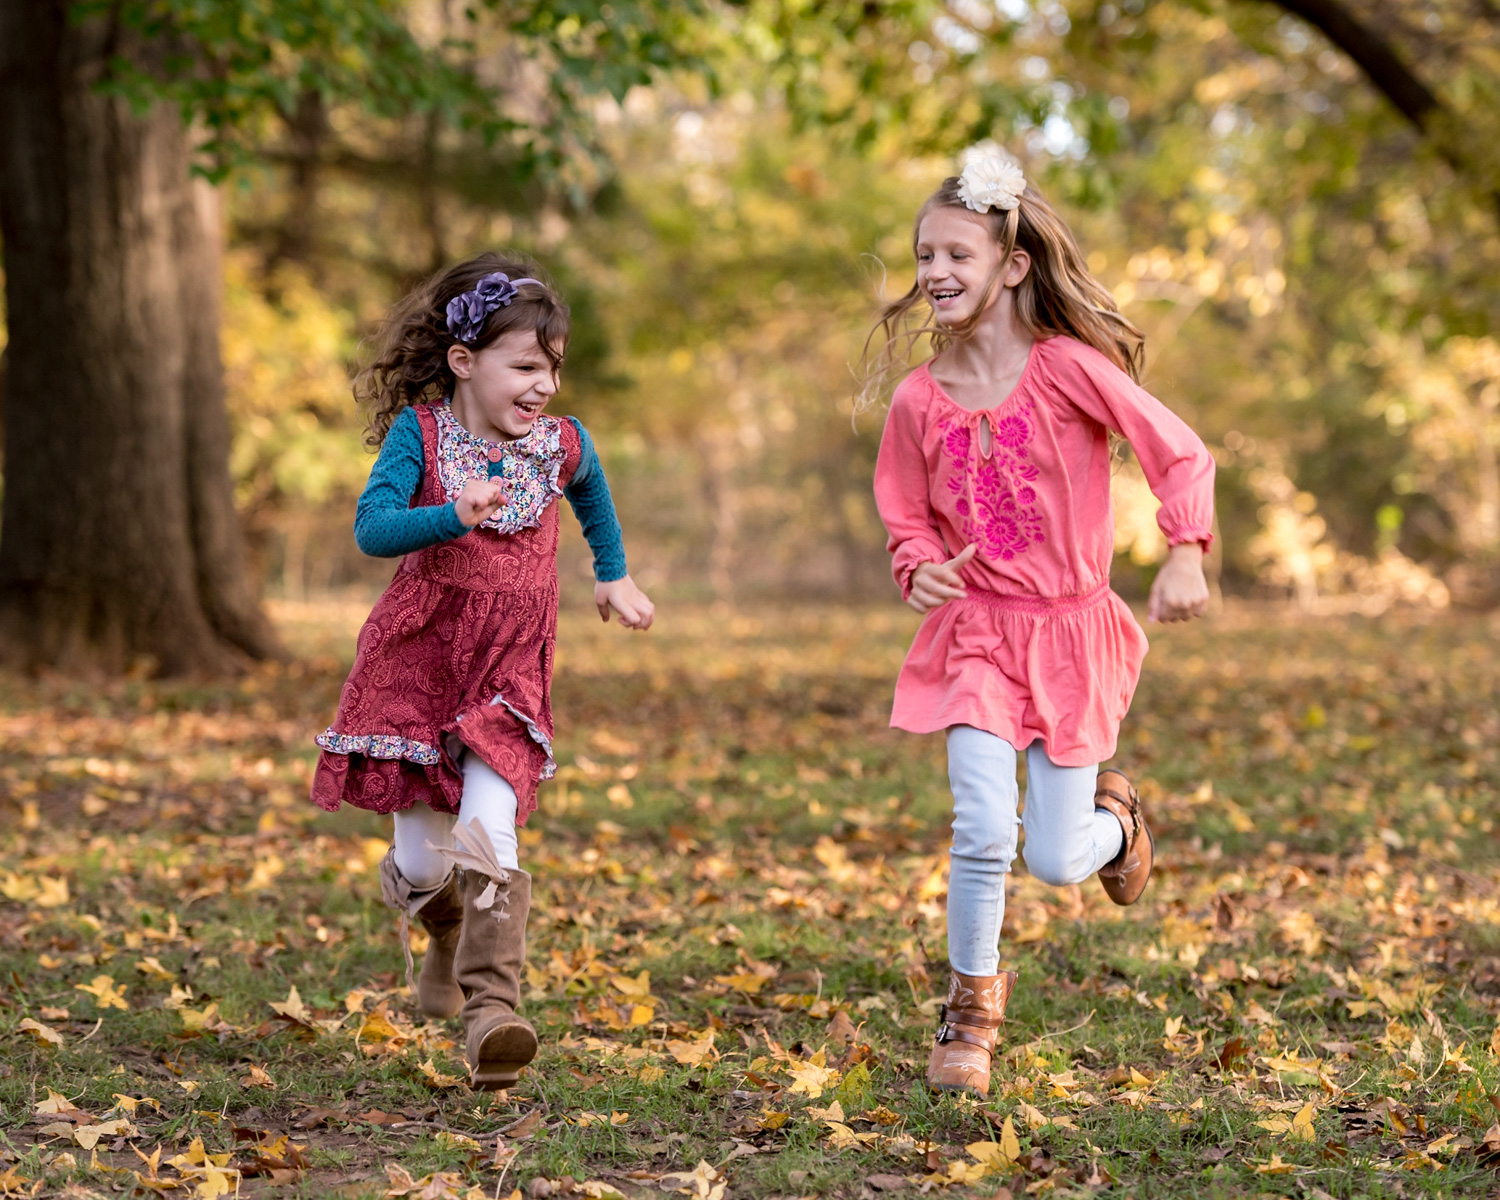 girls-running-forest